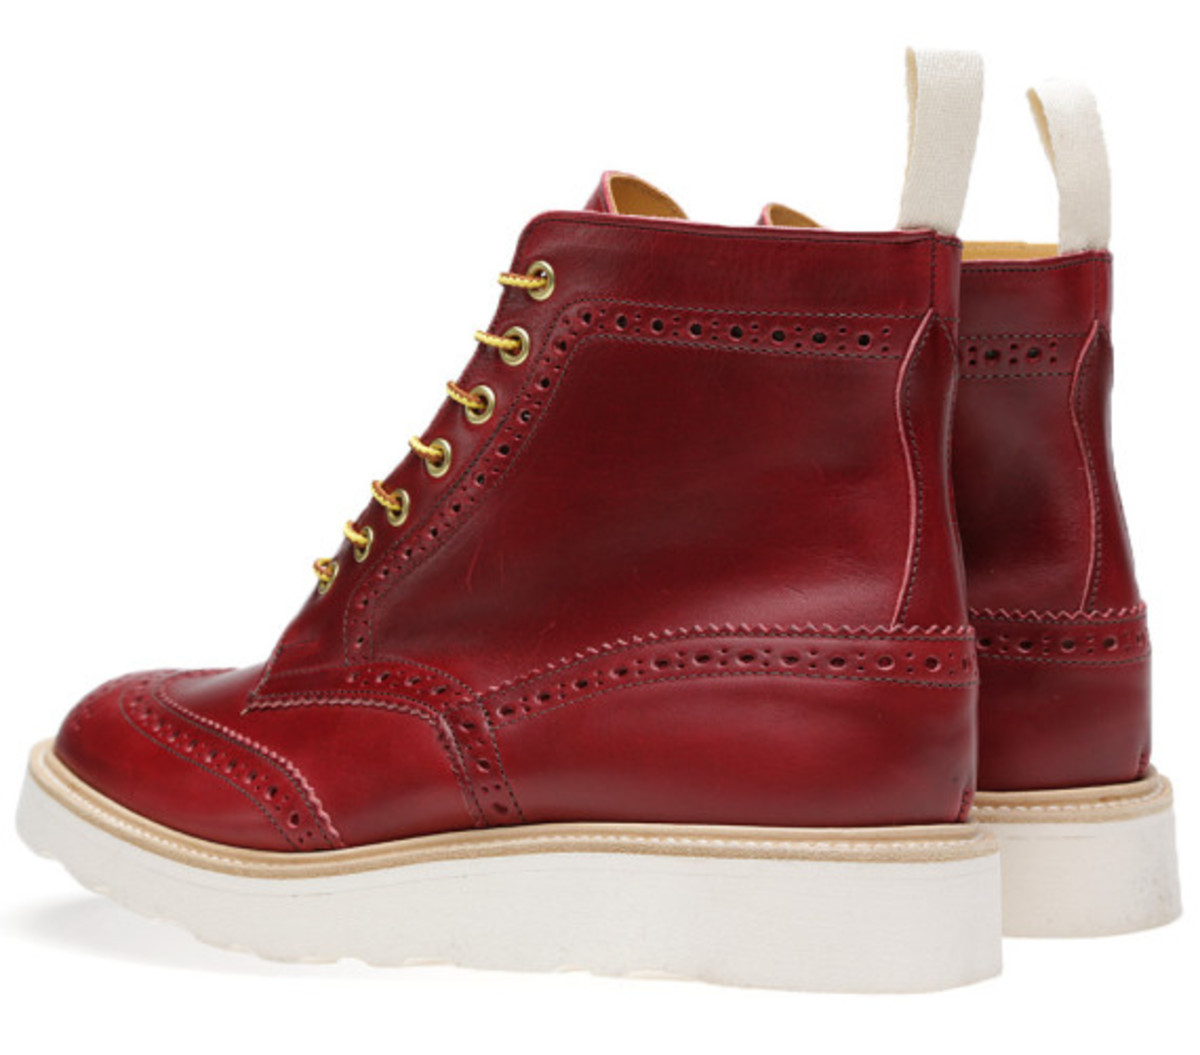 end-trickers-vibram-sole-stow-boot-15